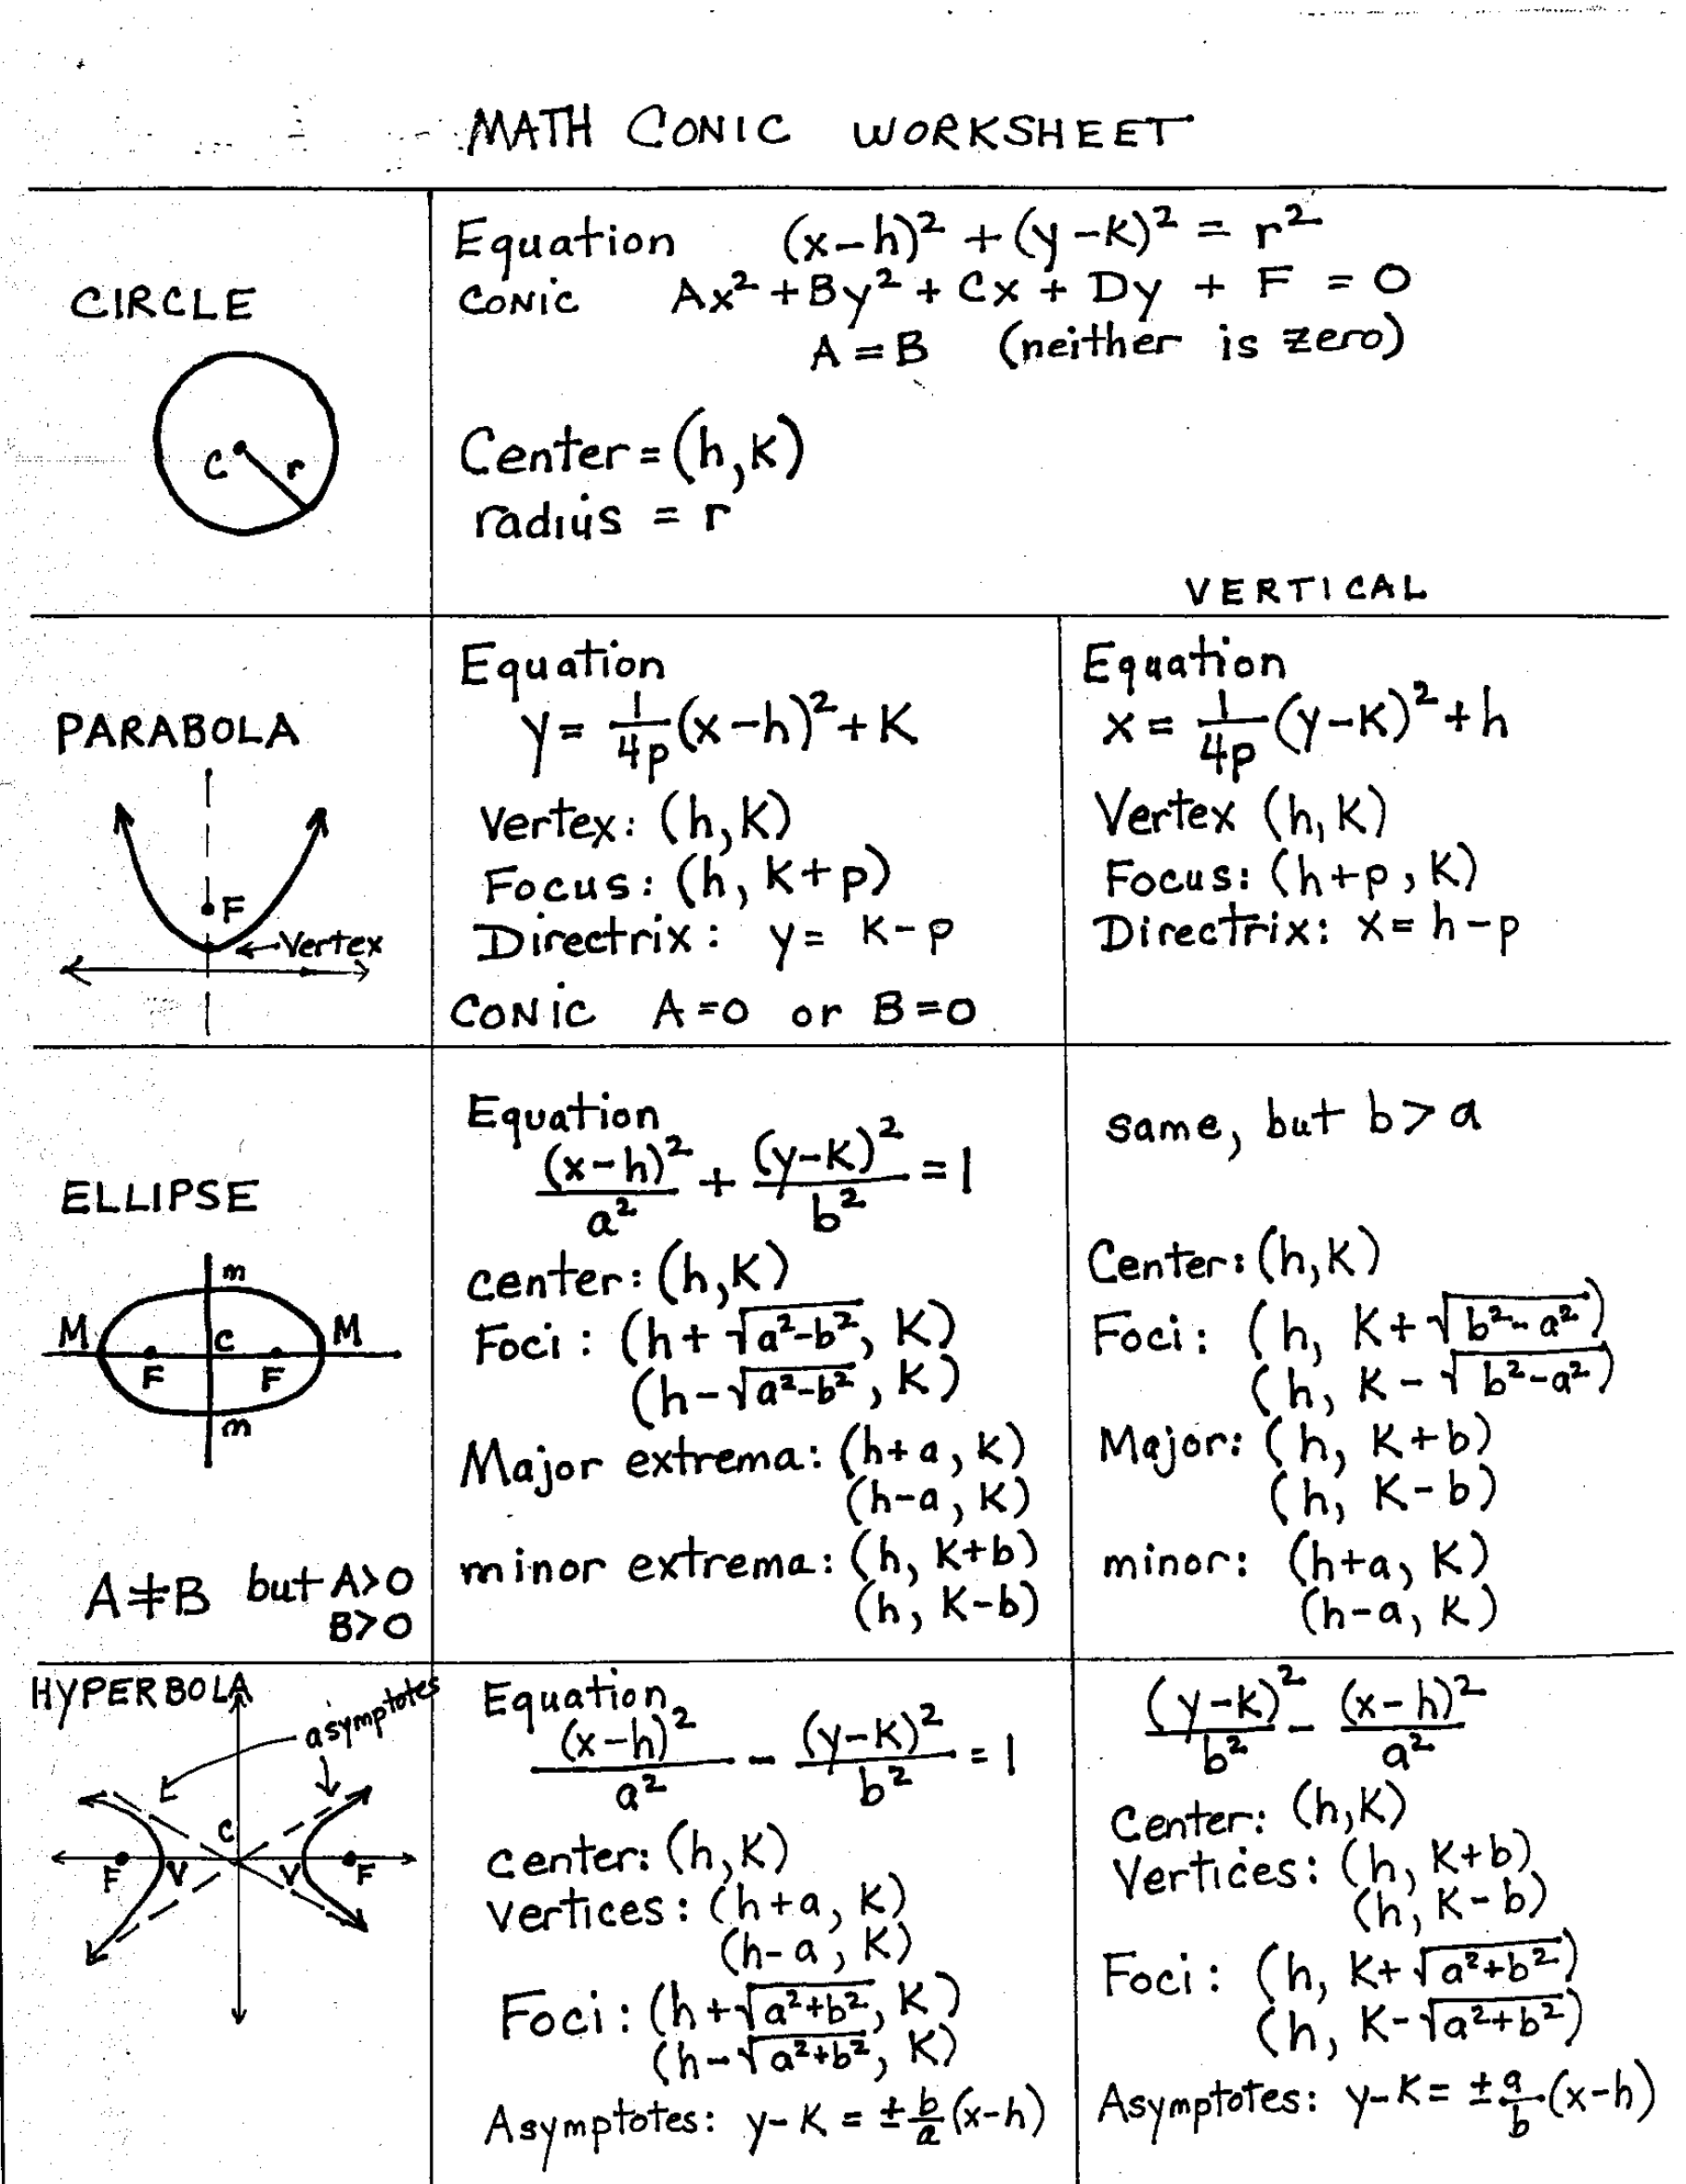 Worksheets Hyperbola Worksheet conic sections circle parabola ellipse and hyperbola algebra hyperbola